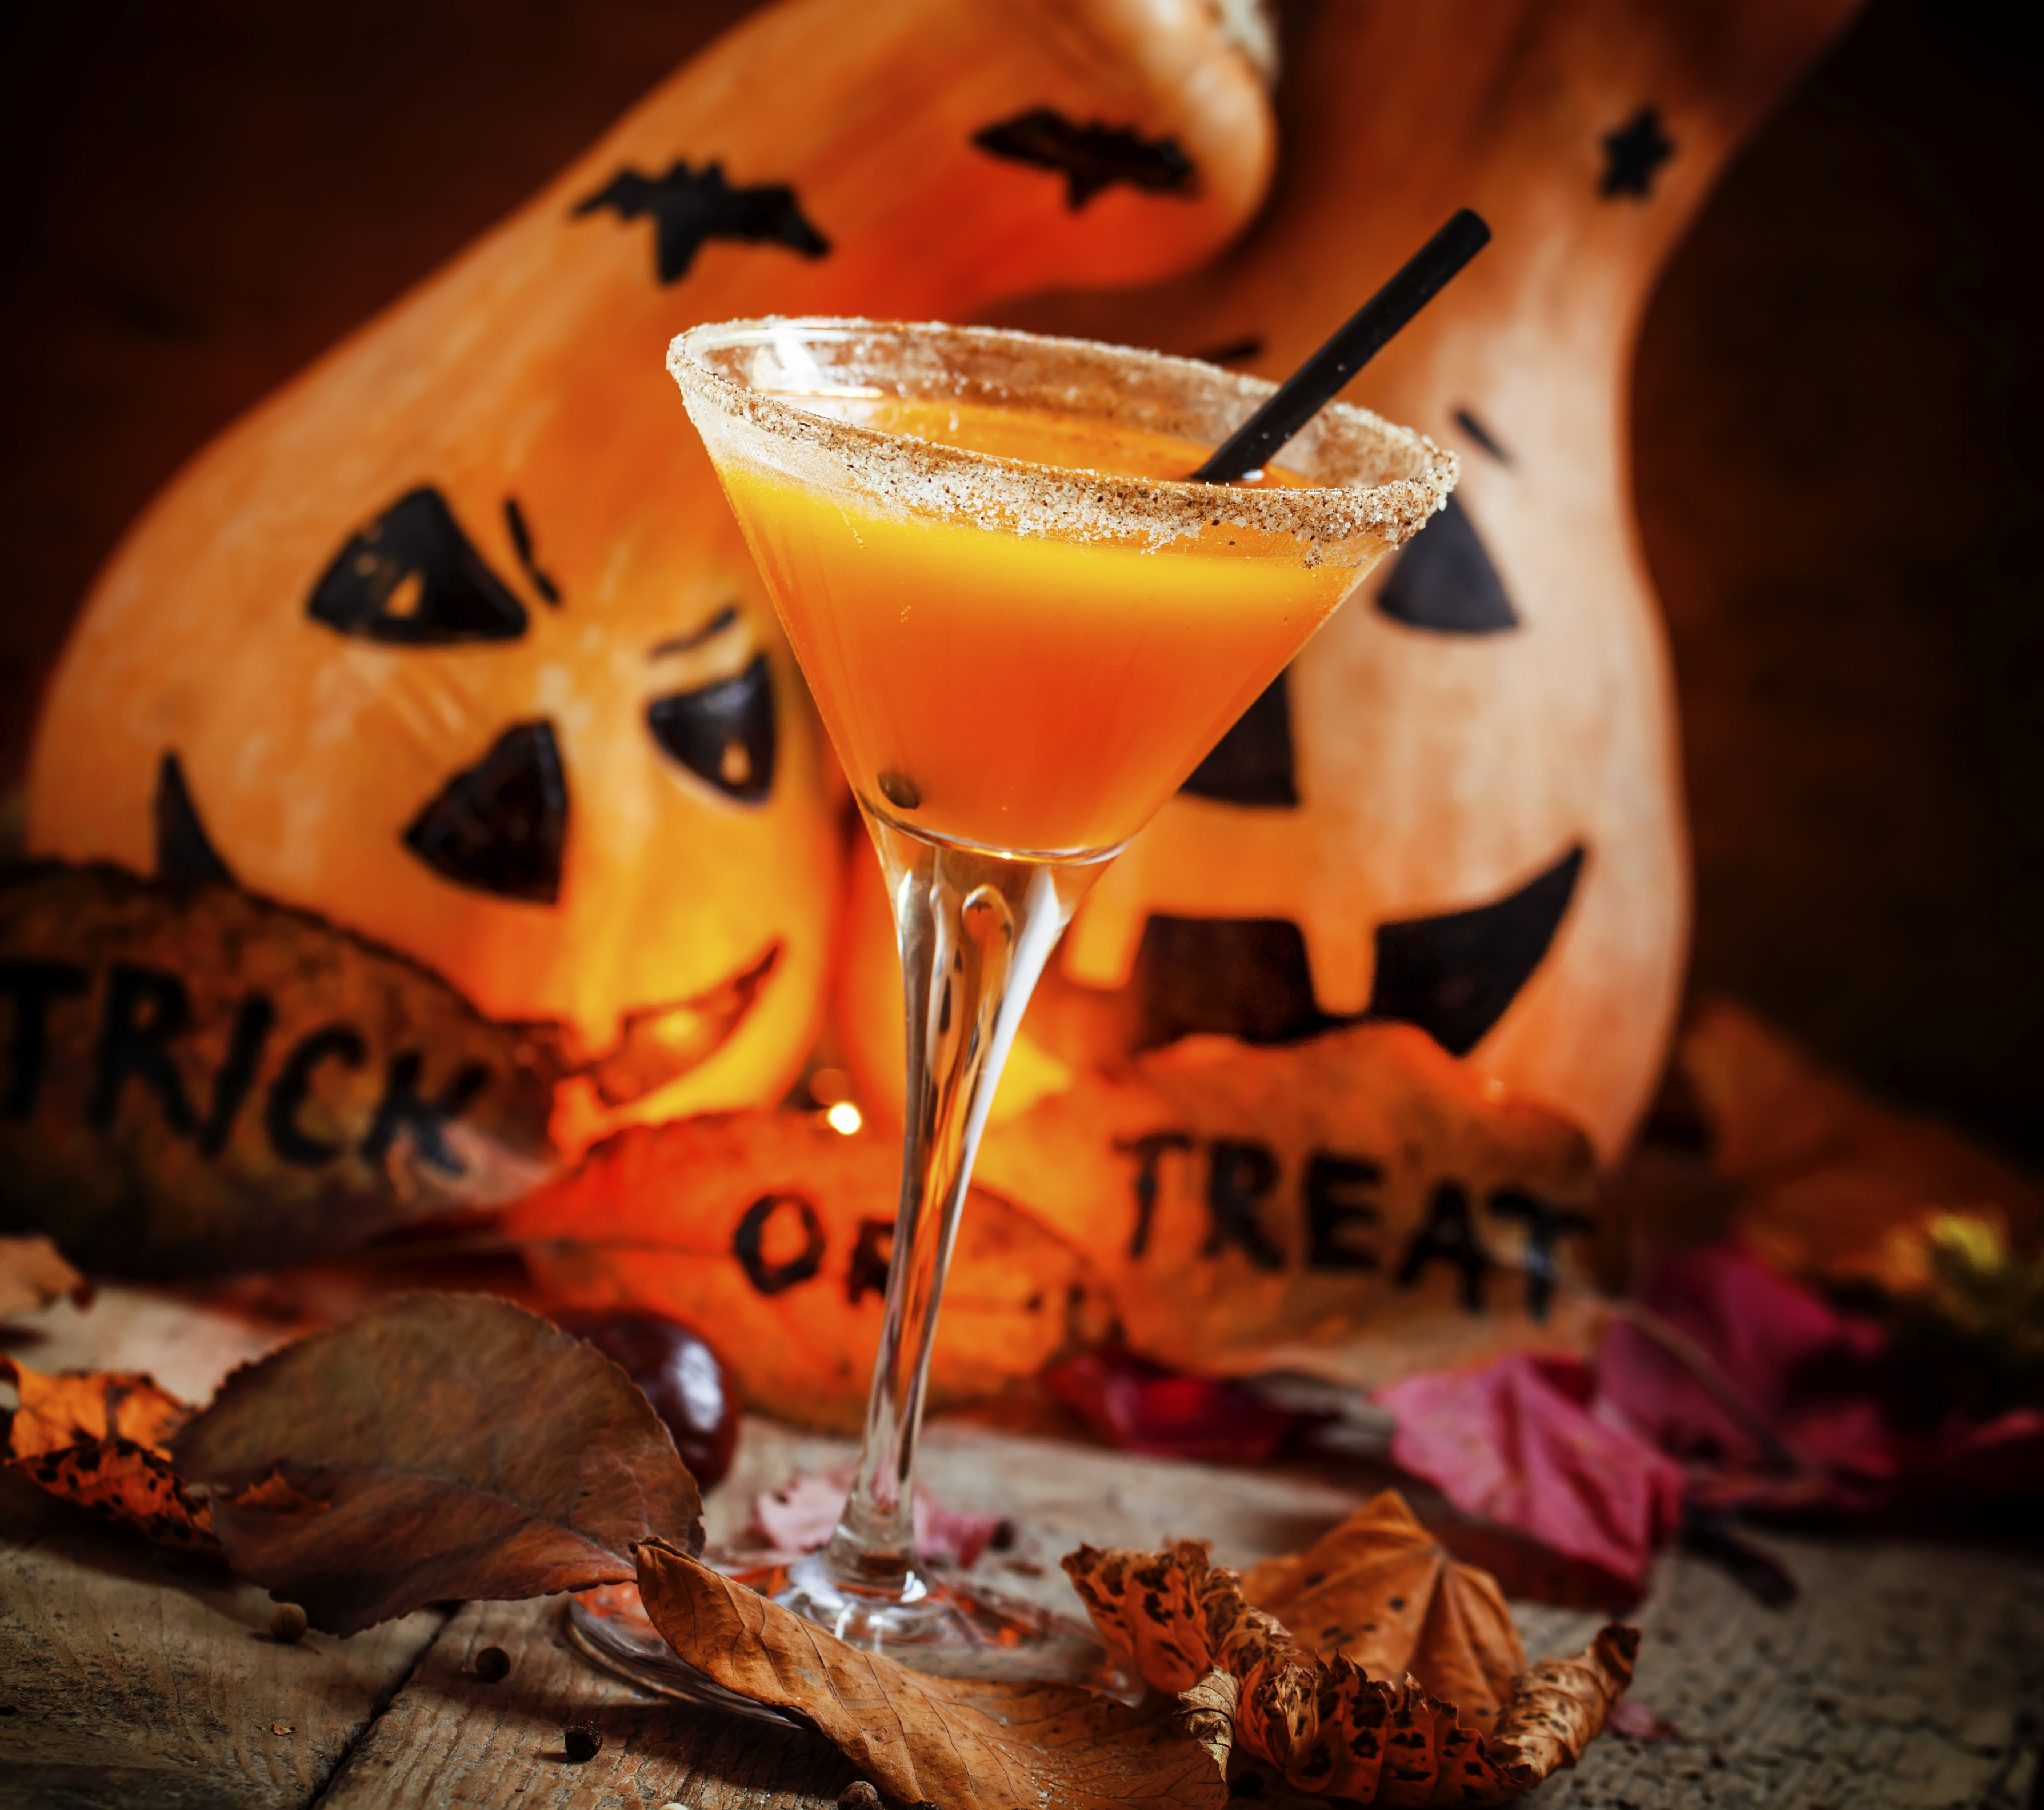 Orange Halloween cocktail and holiday pumpkins on a dark mystical autumn background, selective focus